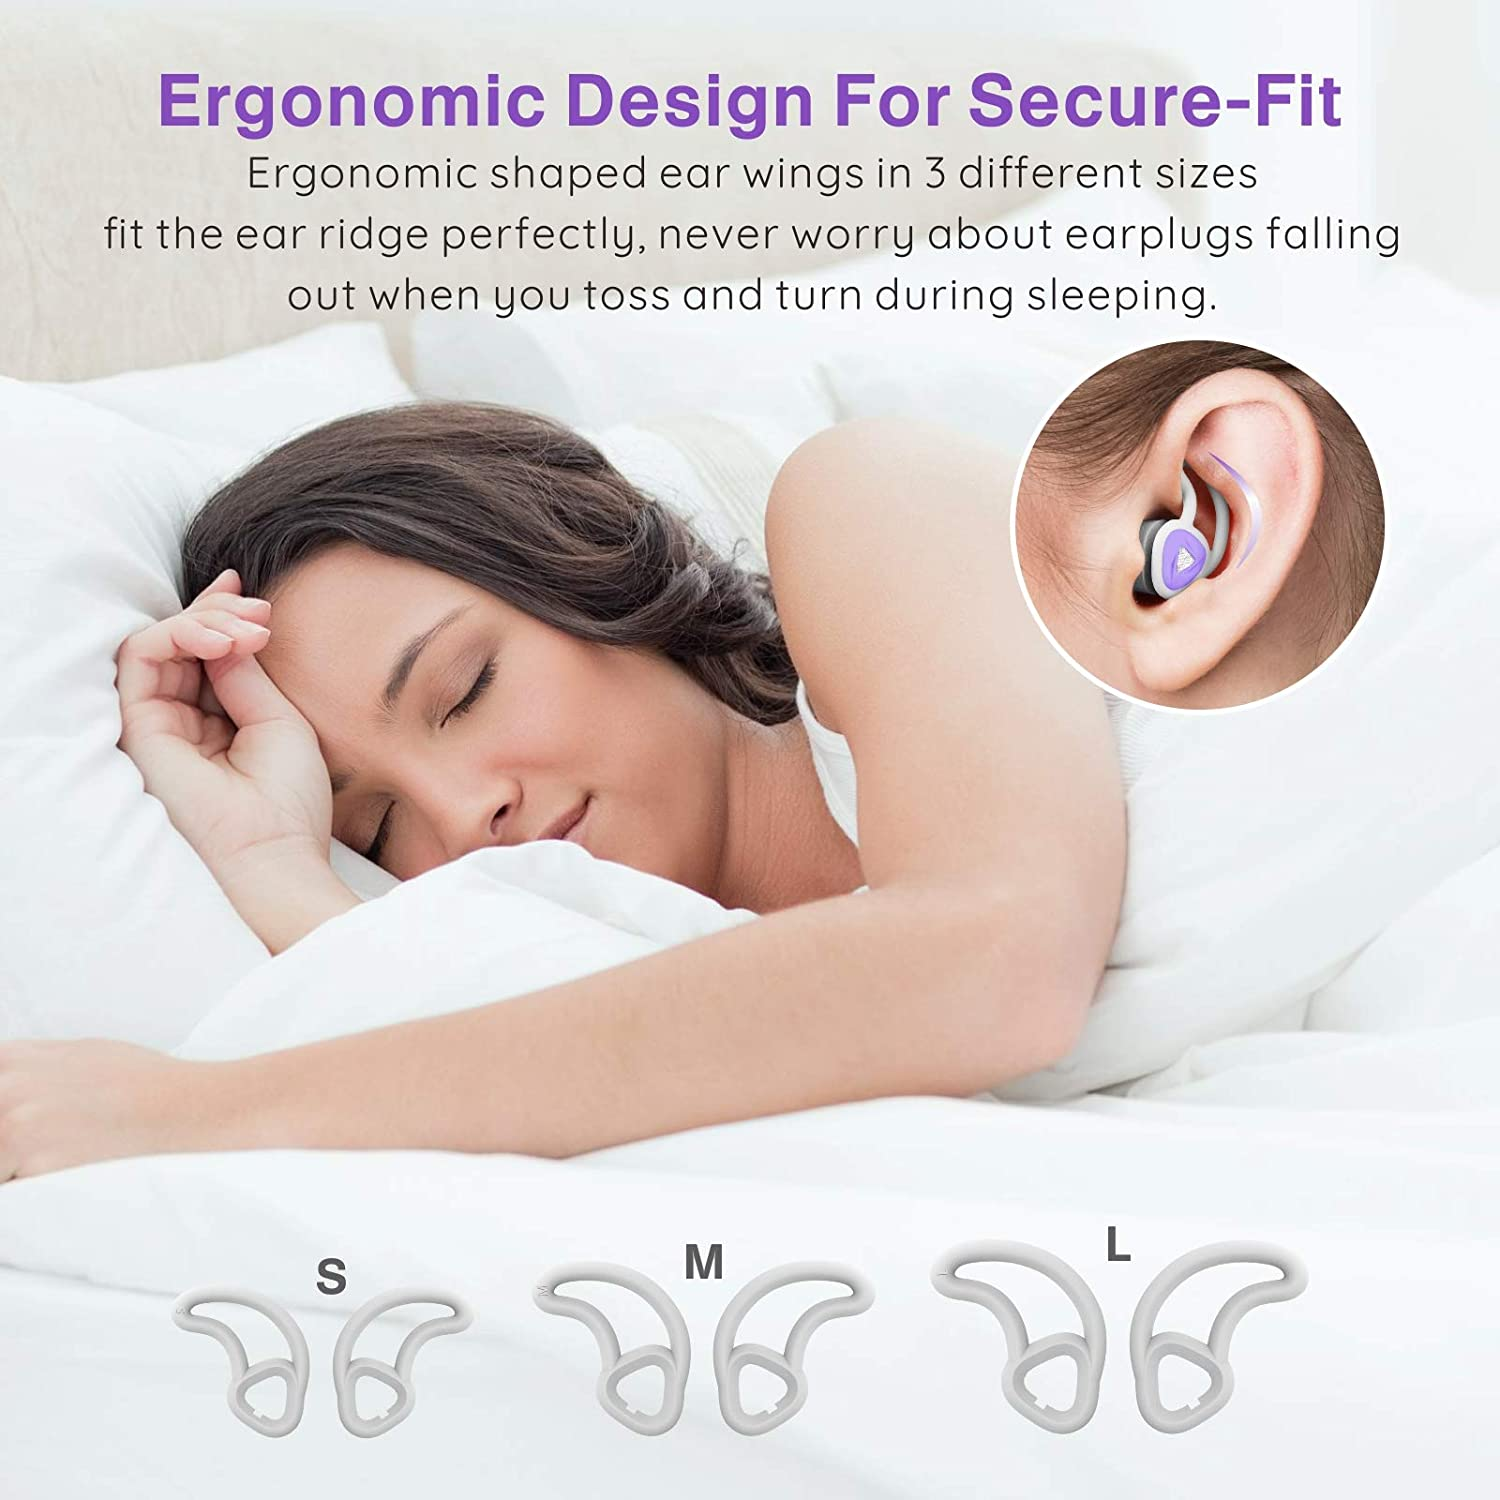 Purple Ear Plugs for Sleeping Sound Blocking snoring Hearprotek Upgraded Foam Tips Sleep earplugs with Interchangeable Silicone Tips Ear Plug for Noise Reduction Study and Work